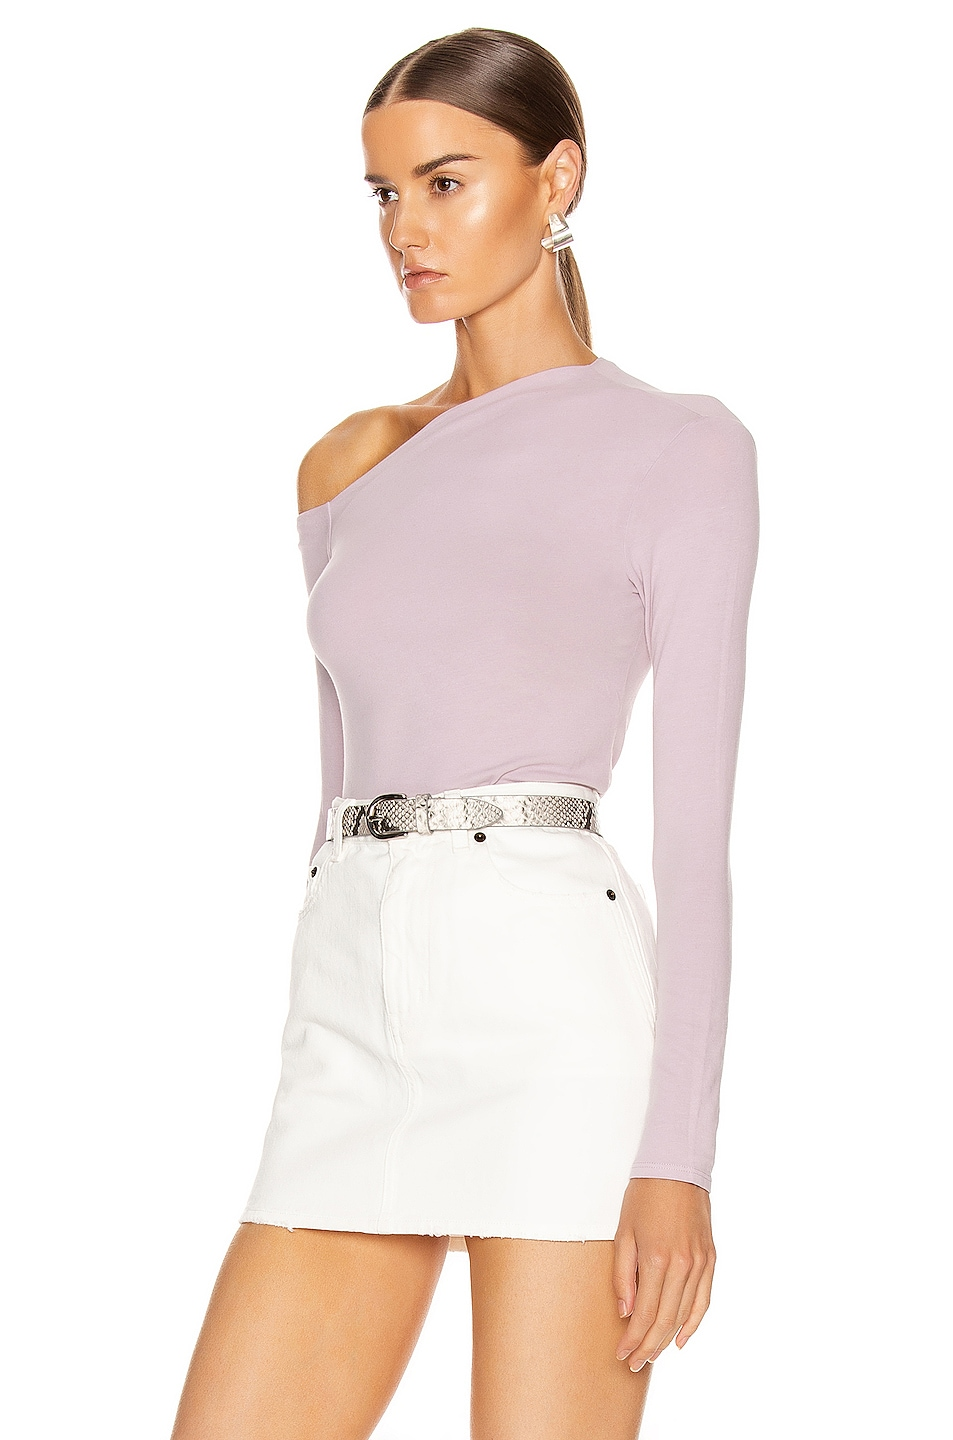 Image 3 of Enza Costa Angled Exposed Shoulder Long Sleeve Top in Pink Crystals